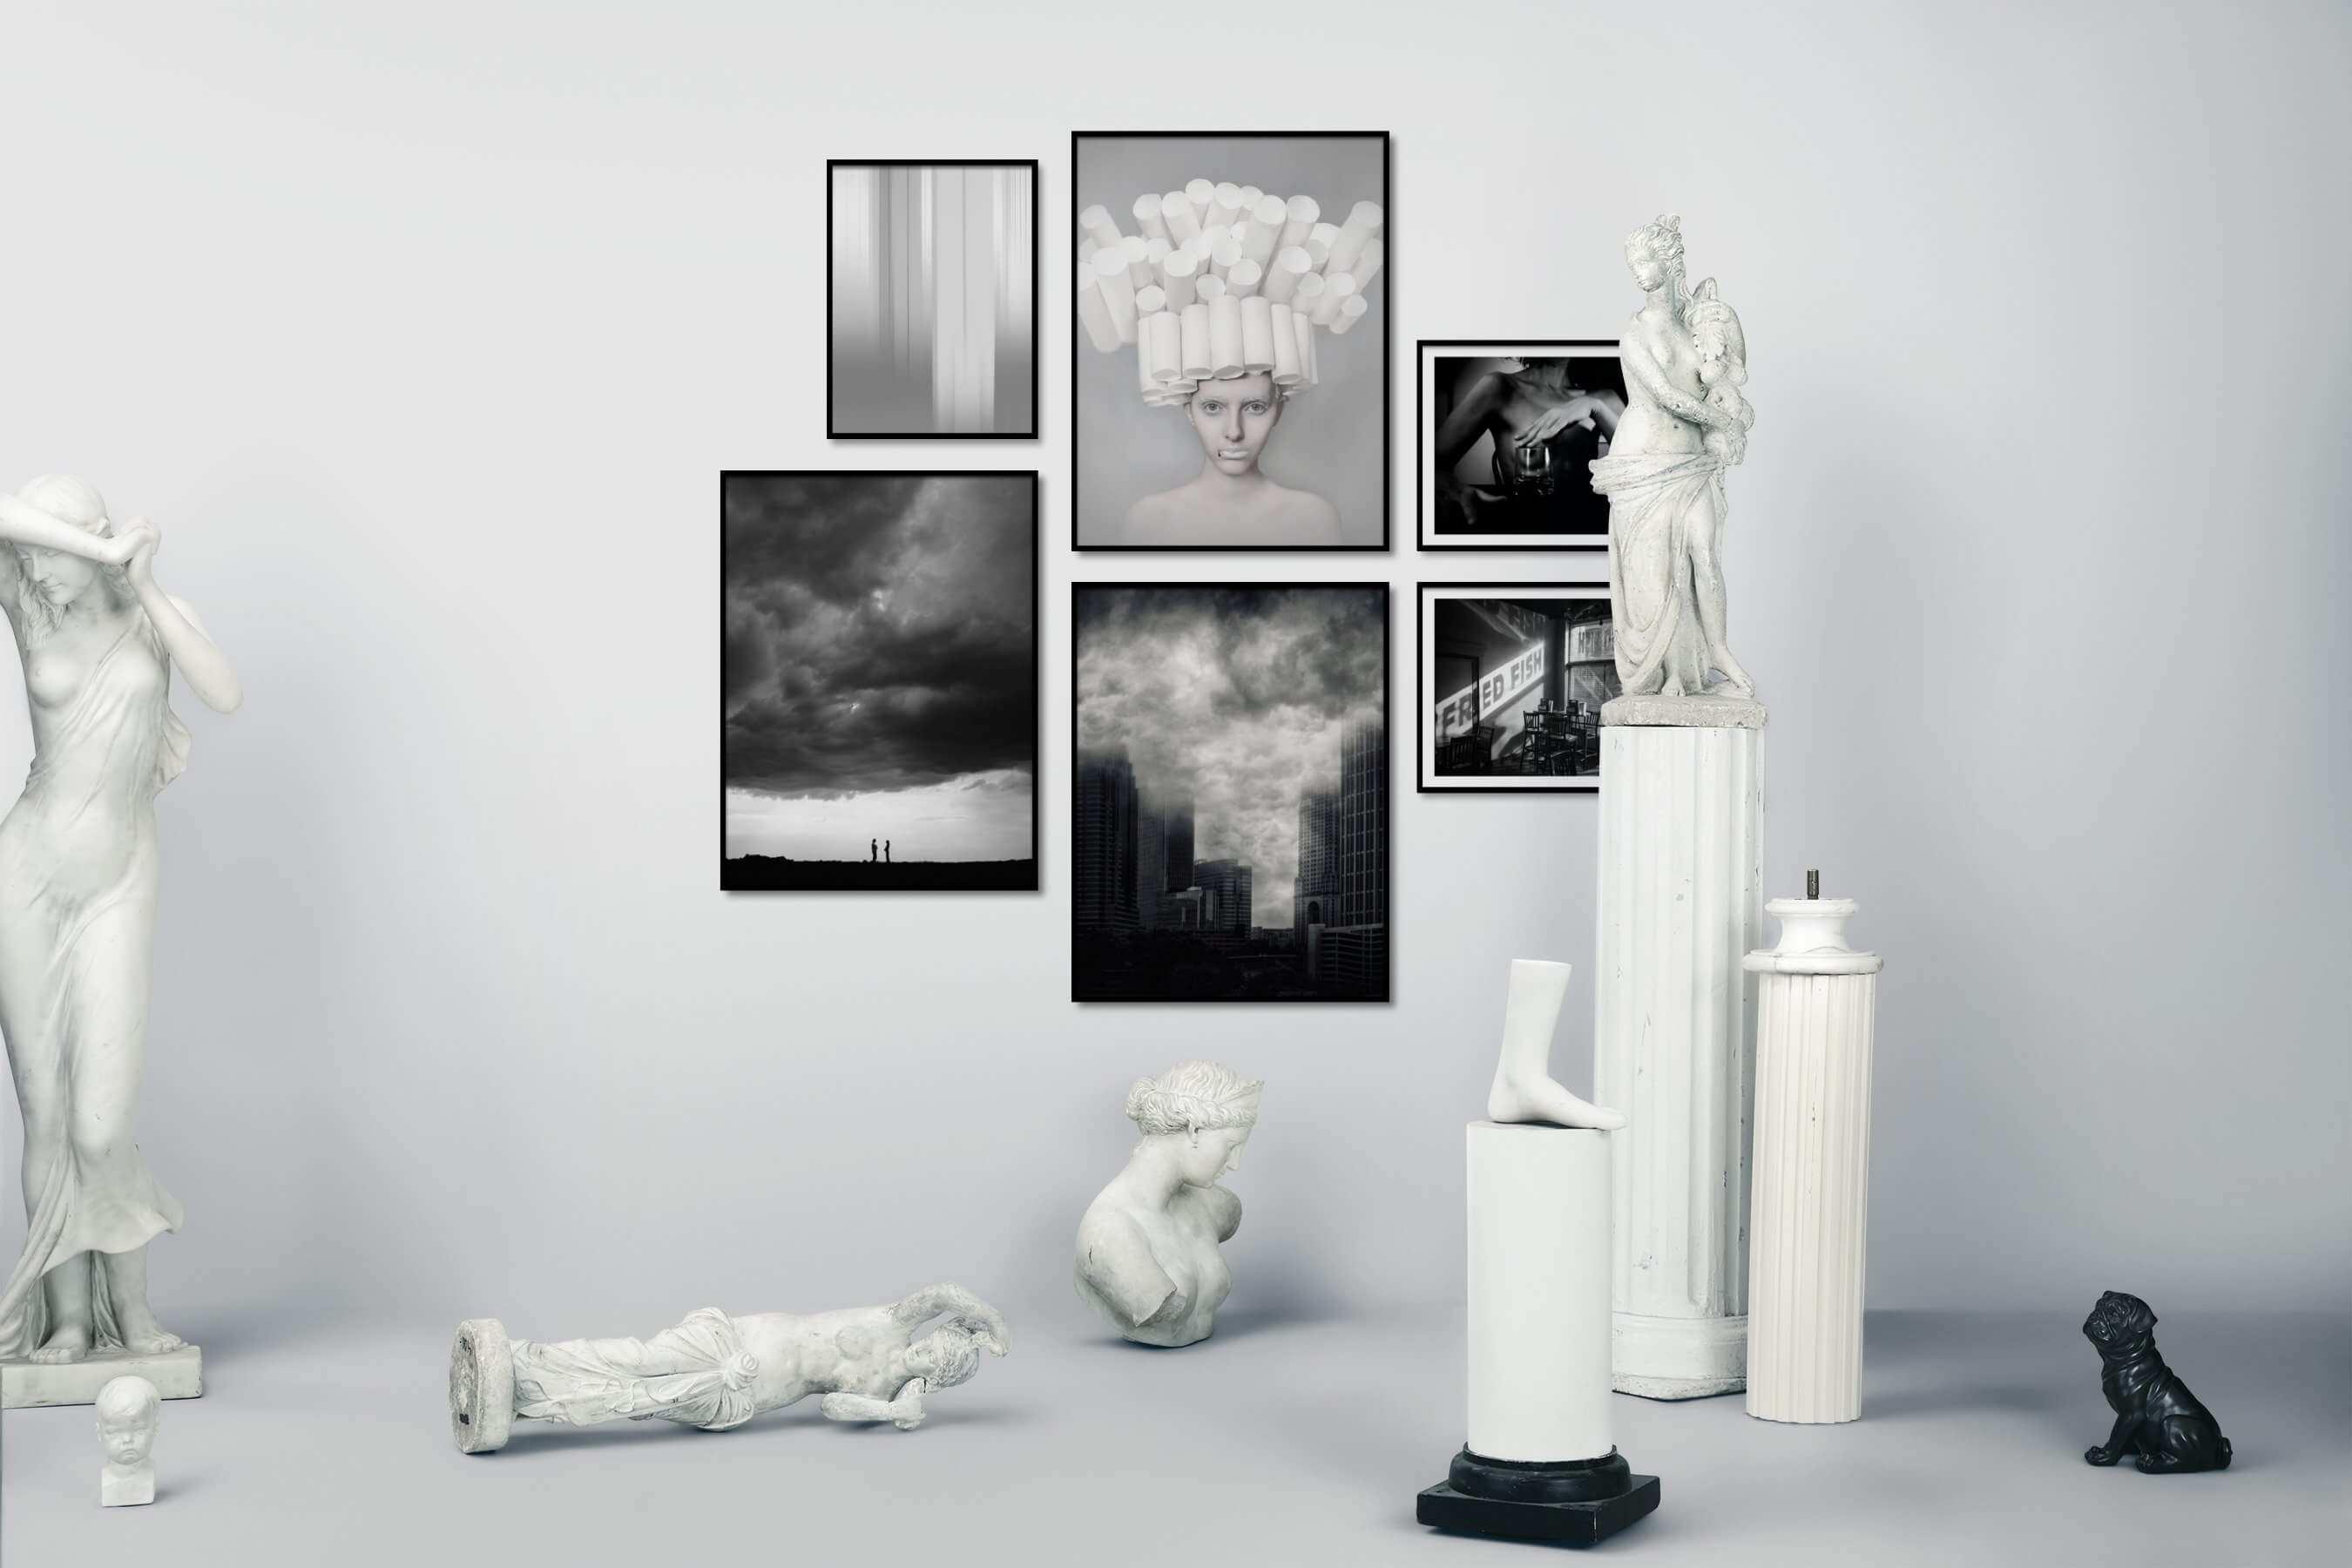 Gallery wall idea with six framed pictures arranged on a wall depicting Black & White, For the Moderate, Artsy, Country Life, City Life, Americana, Fashion & Beauty, and Bold